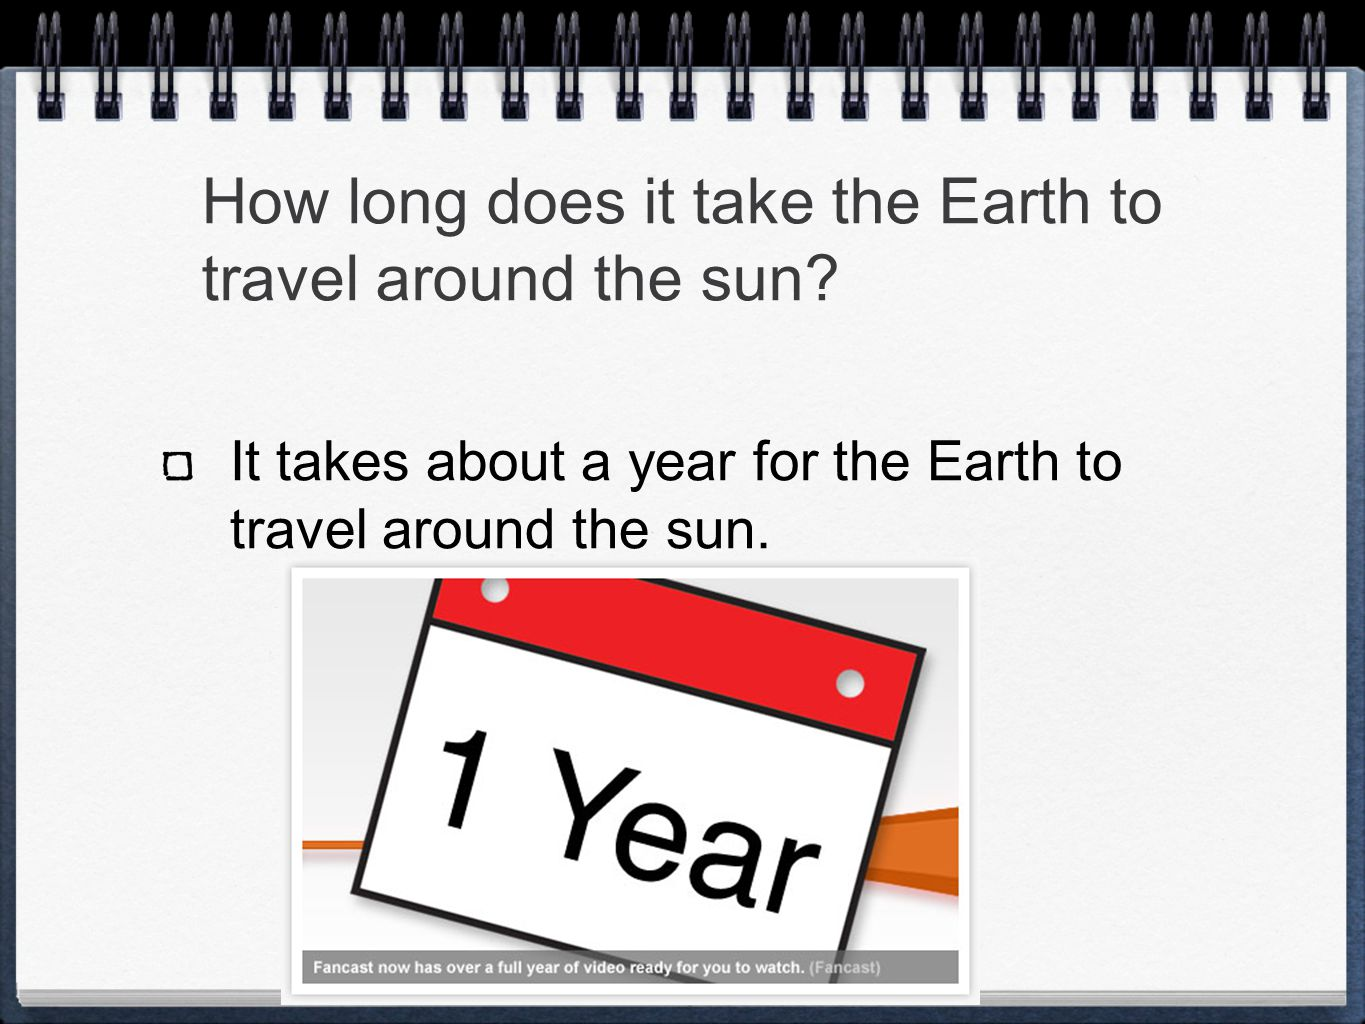 How long does it take the Earth to travel around the sun? It takes about a year for the Earth to travel around the sun.